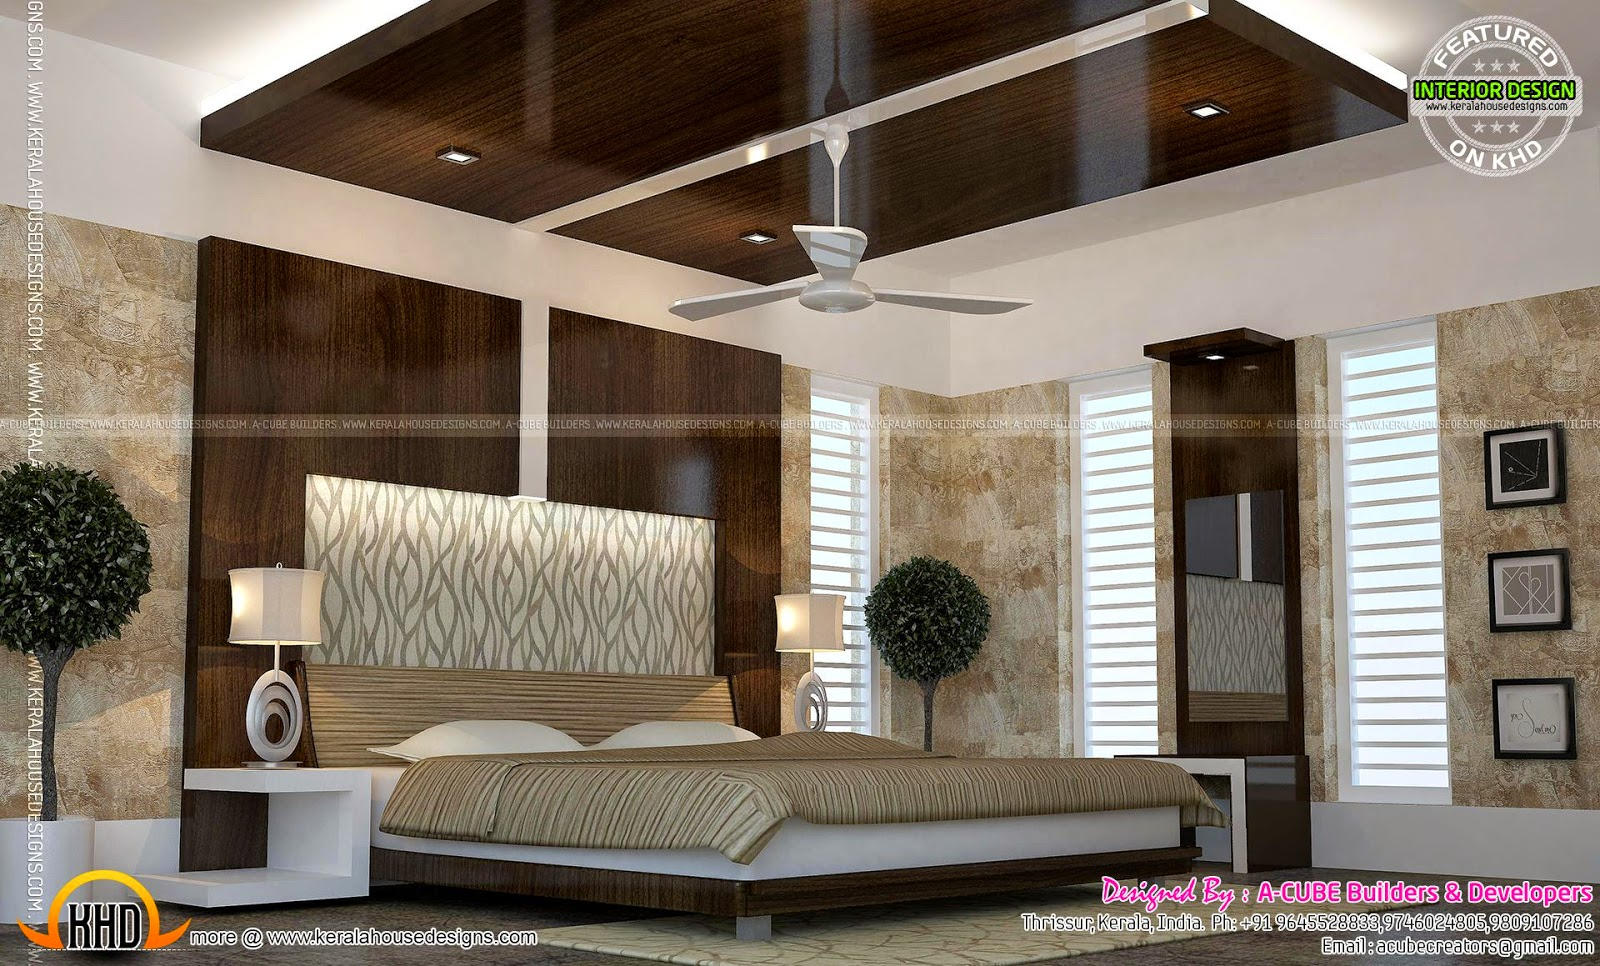 Kerala interior design ideas kerala home design and for Interior designs for bedrooms indian style